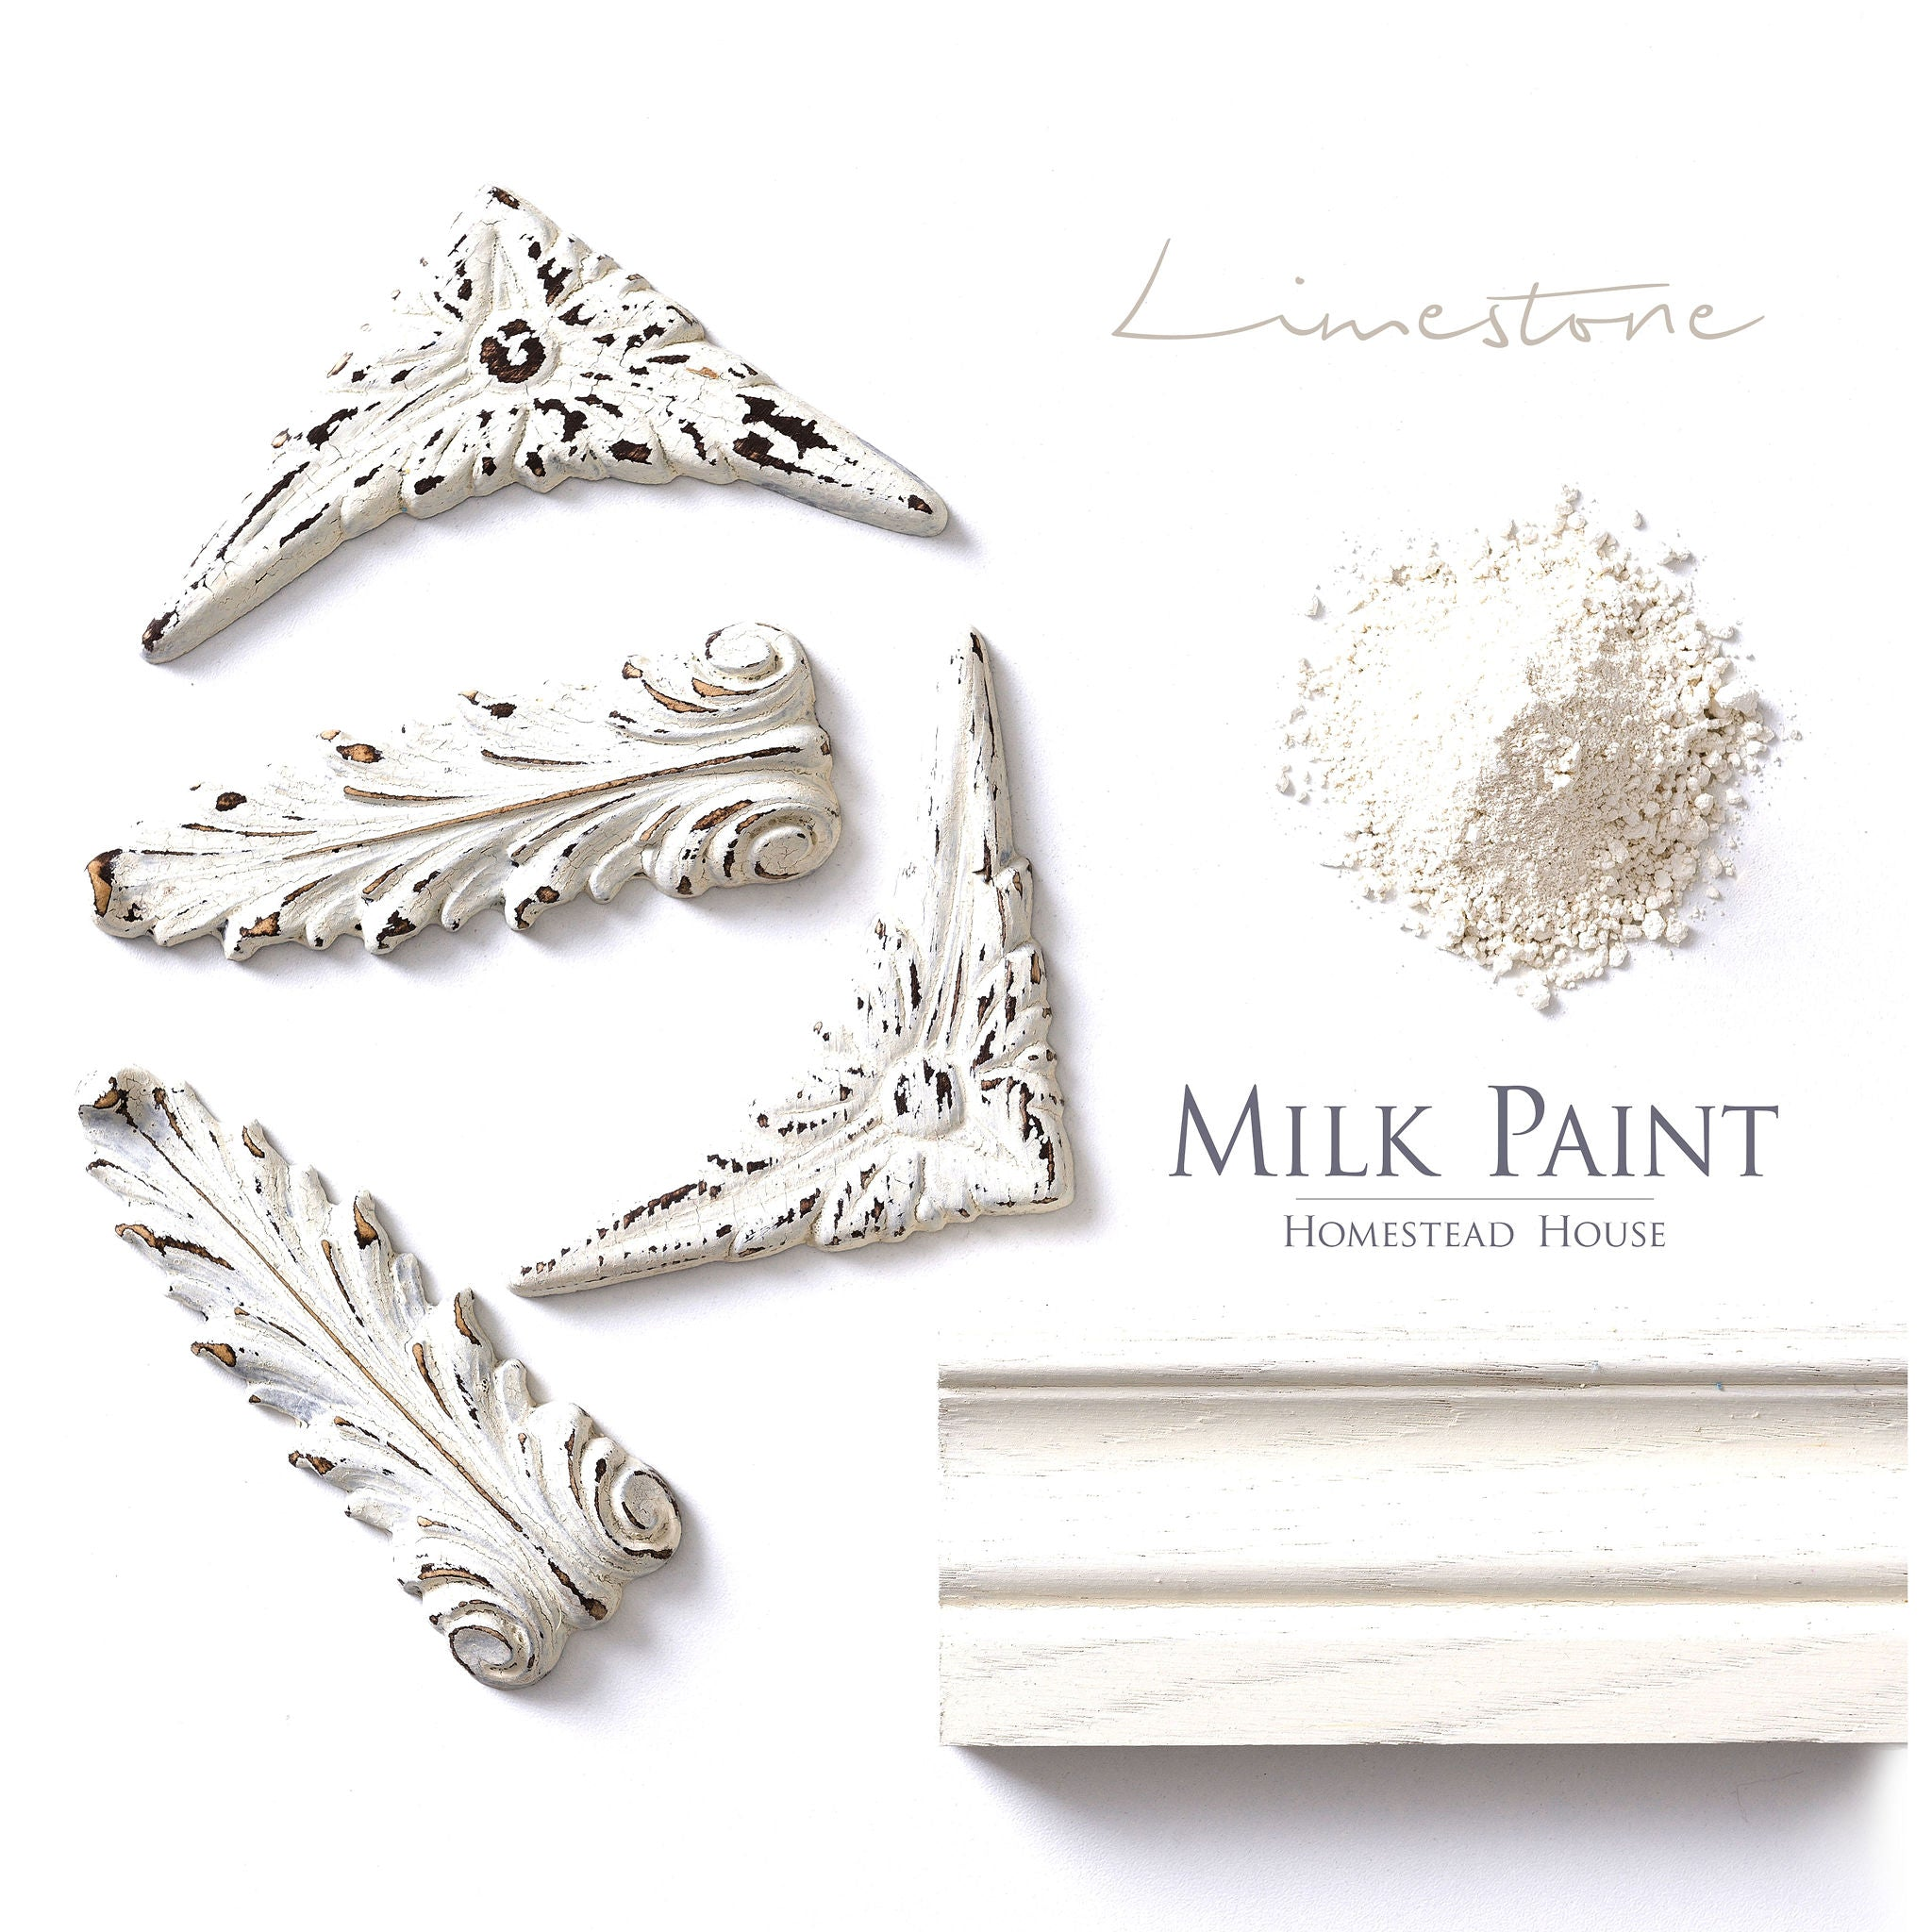 1 Homestead House Milk Paint